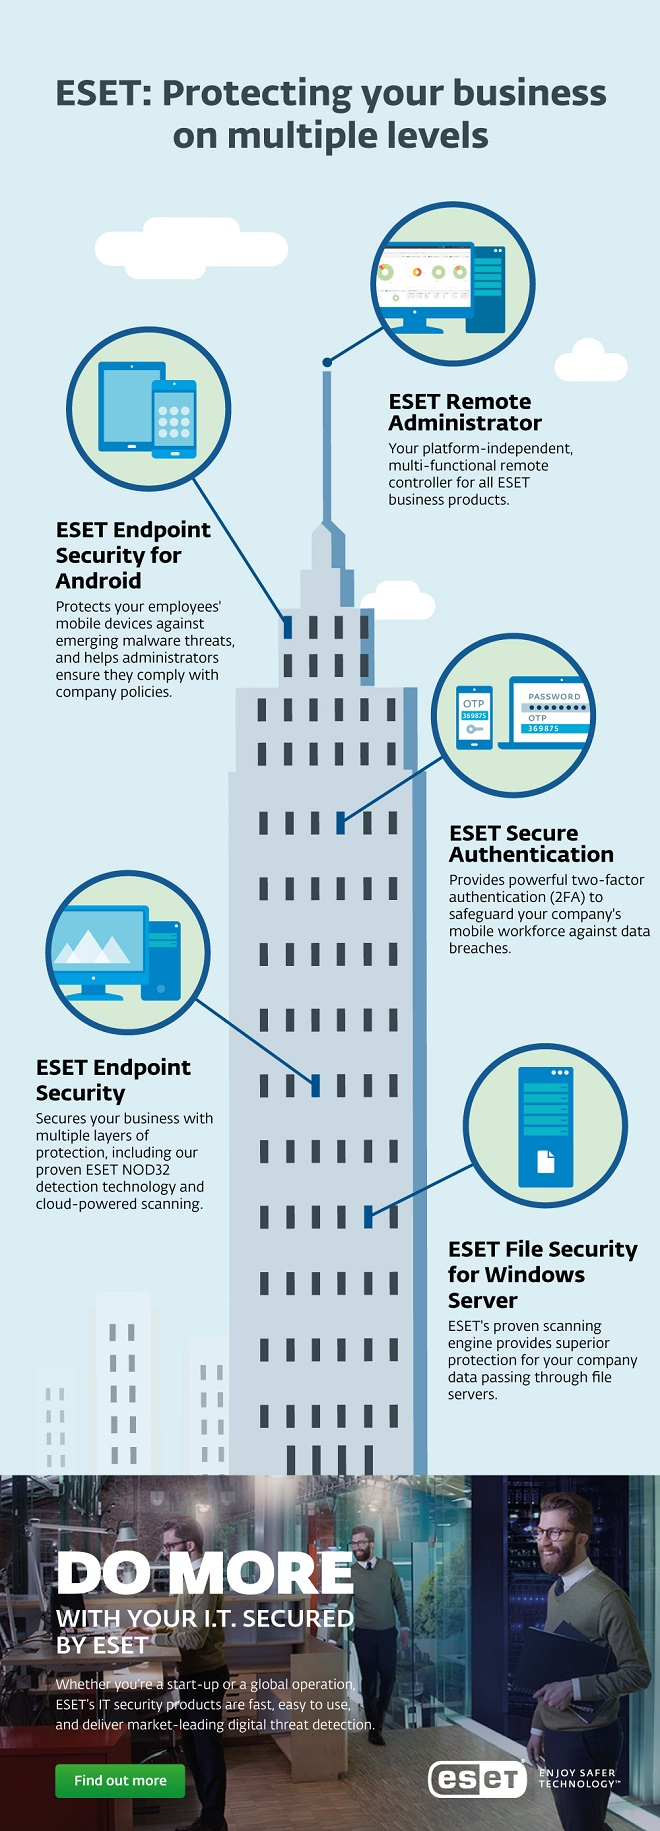 Esets Next Generation Business Security Products Now Available Data About Eset